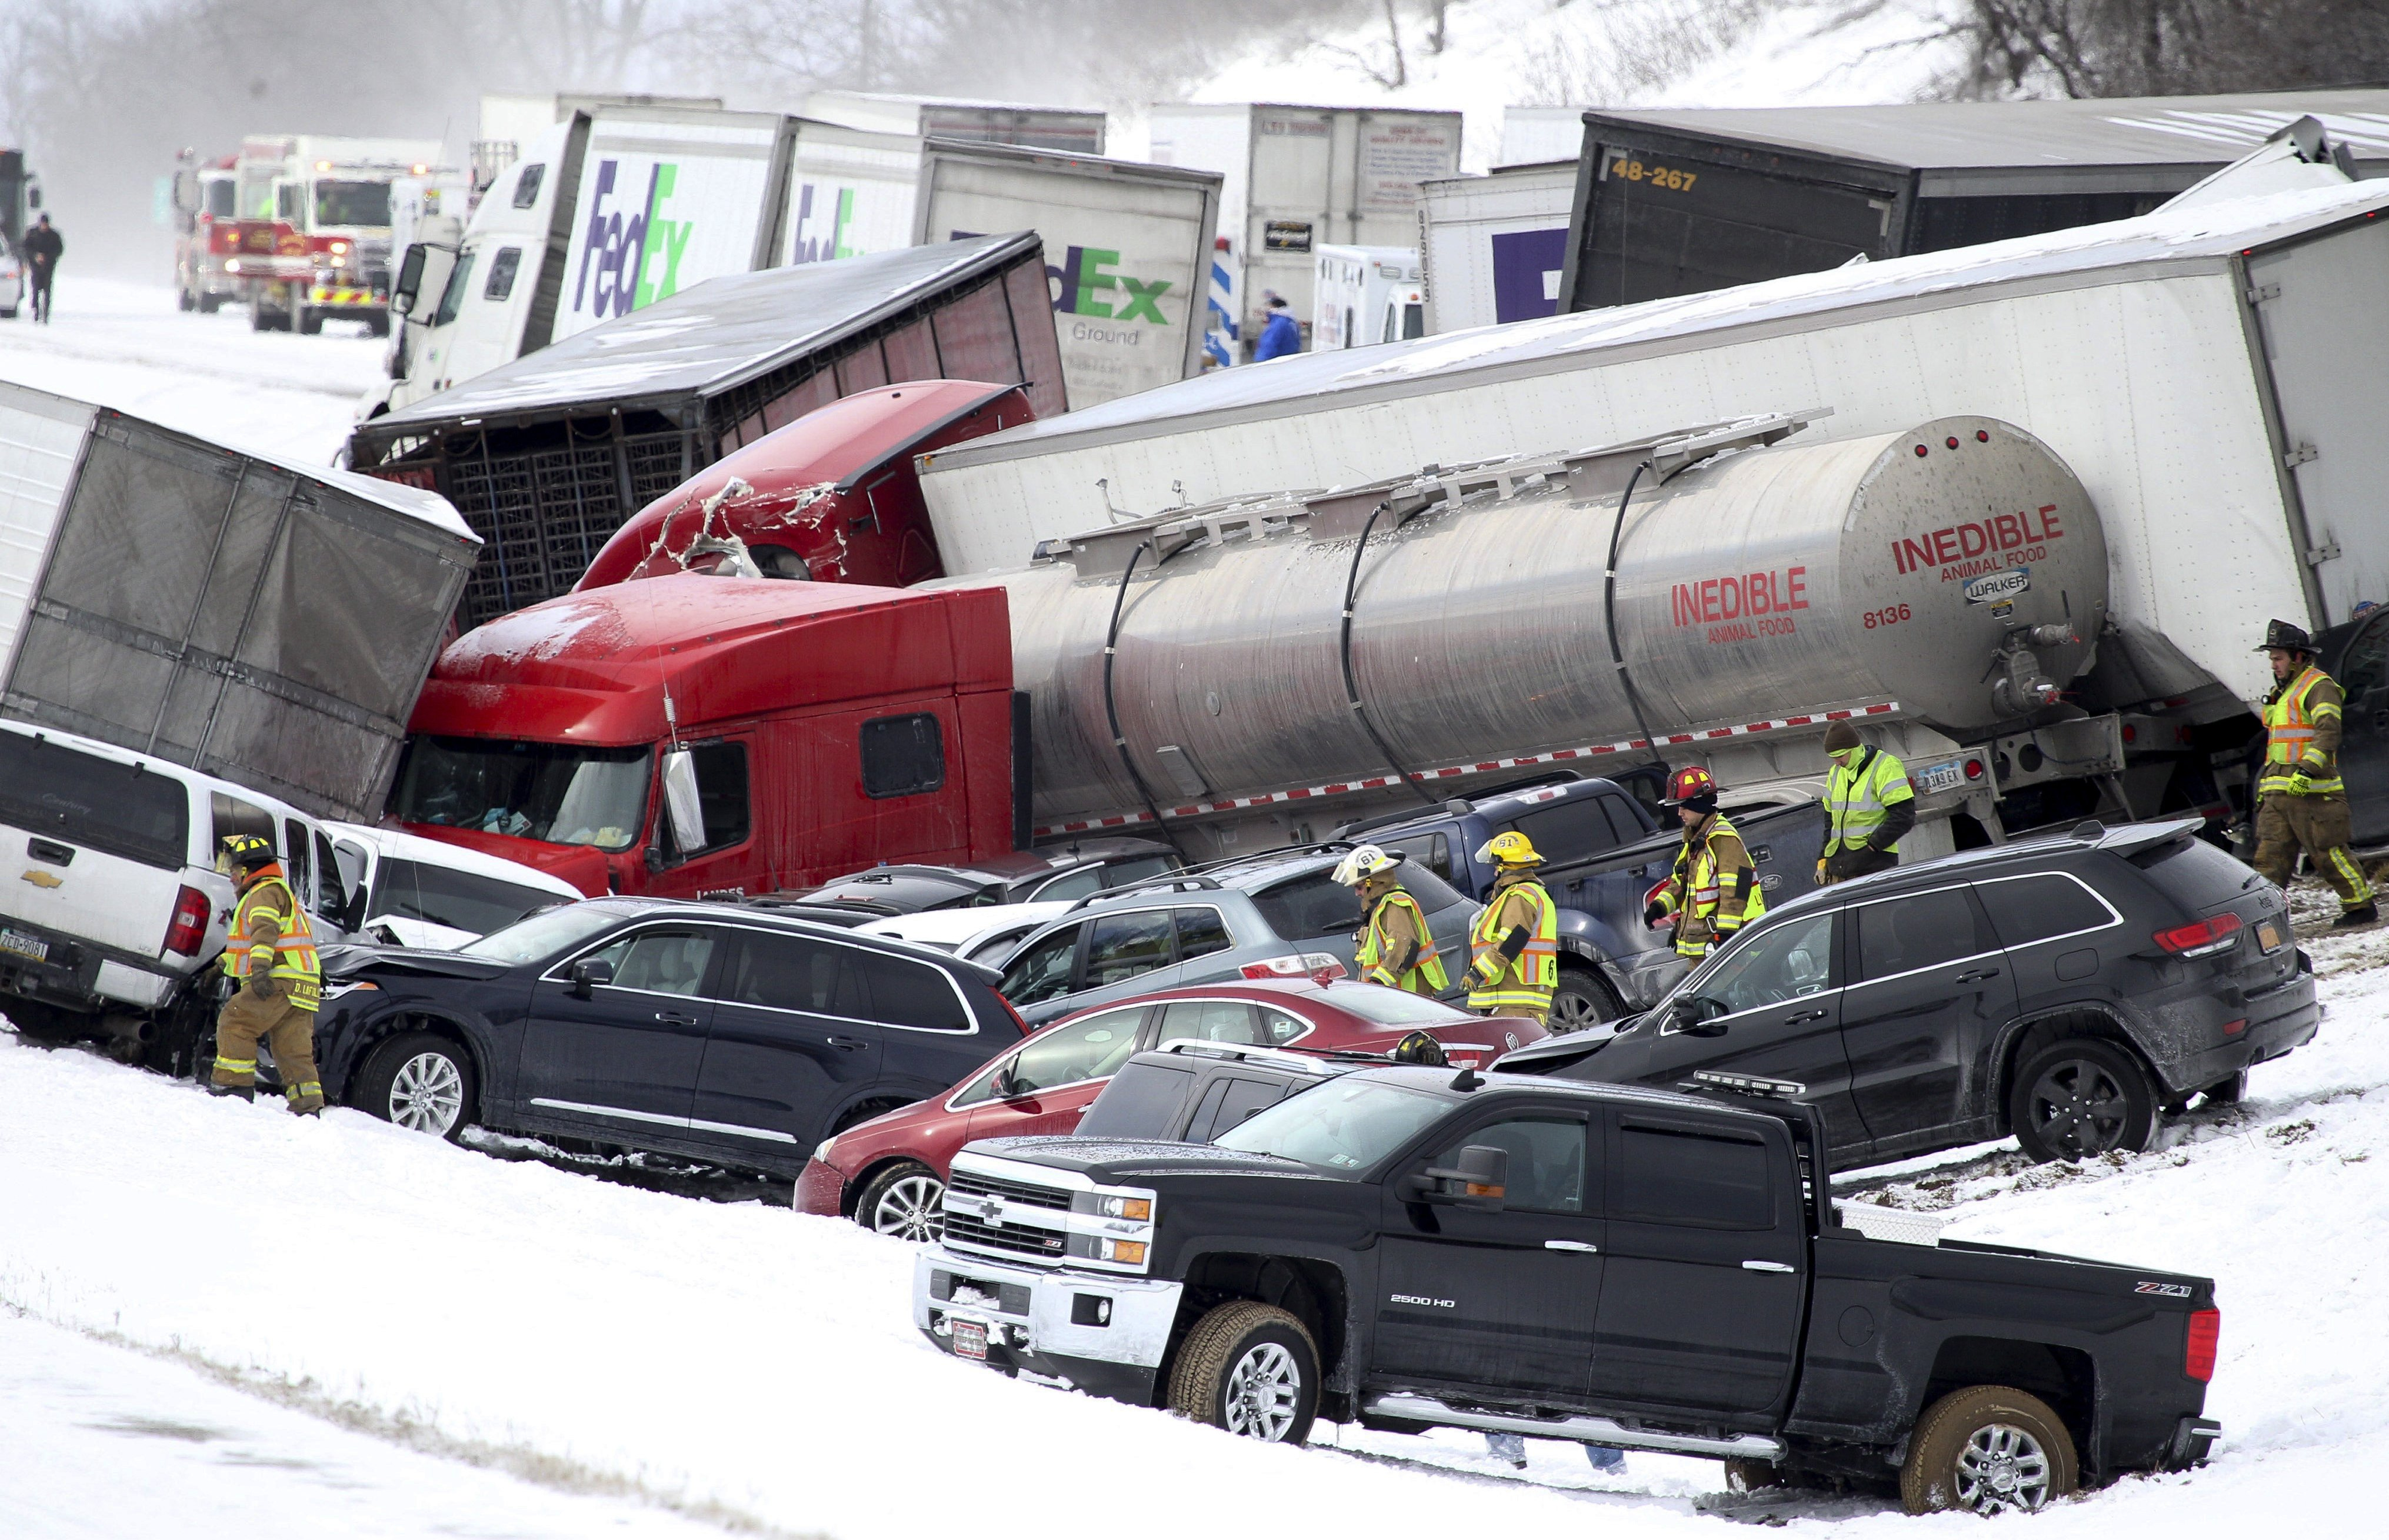 Emergency personnel work at the scene of a crash near Fredericksburg, Pa. on Feb. 13, 2016.